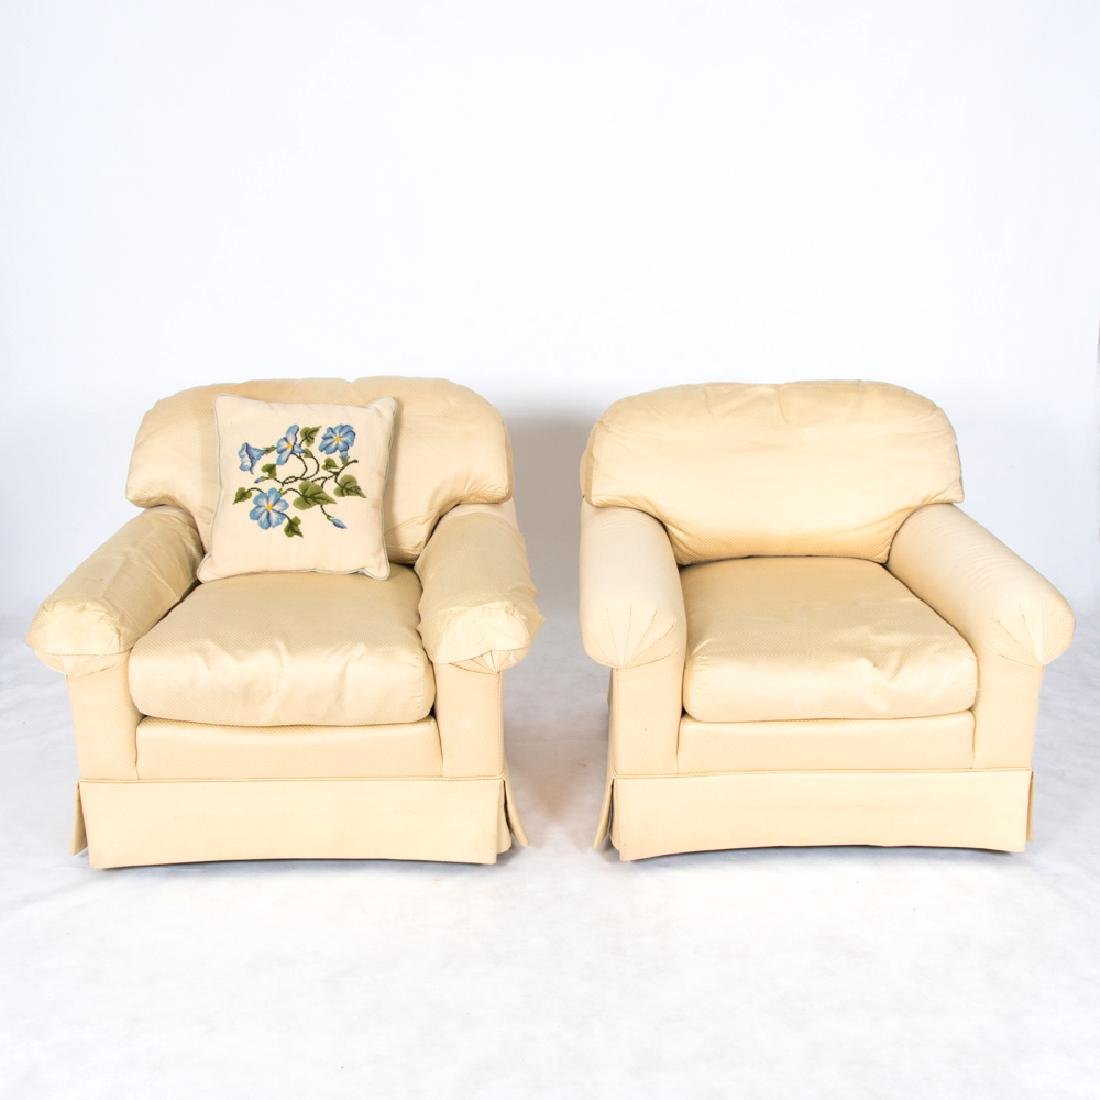 A Pair of Henredon Cream Satin Upholstered Club Chairs,